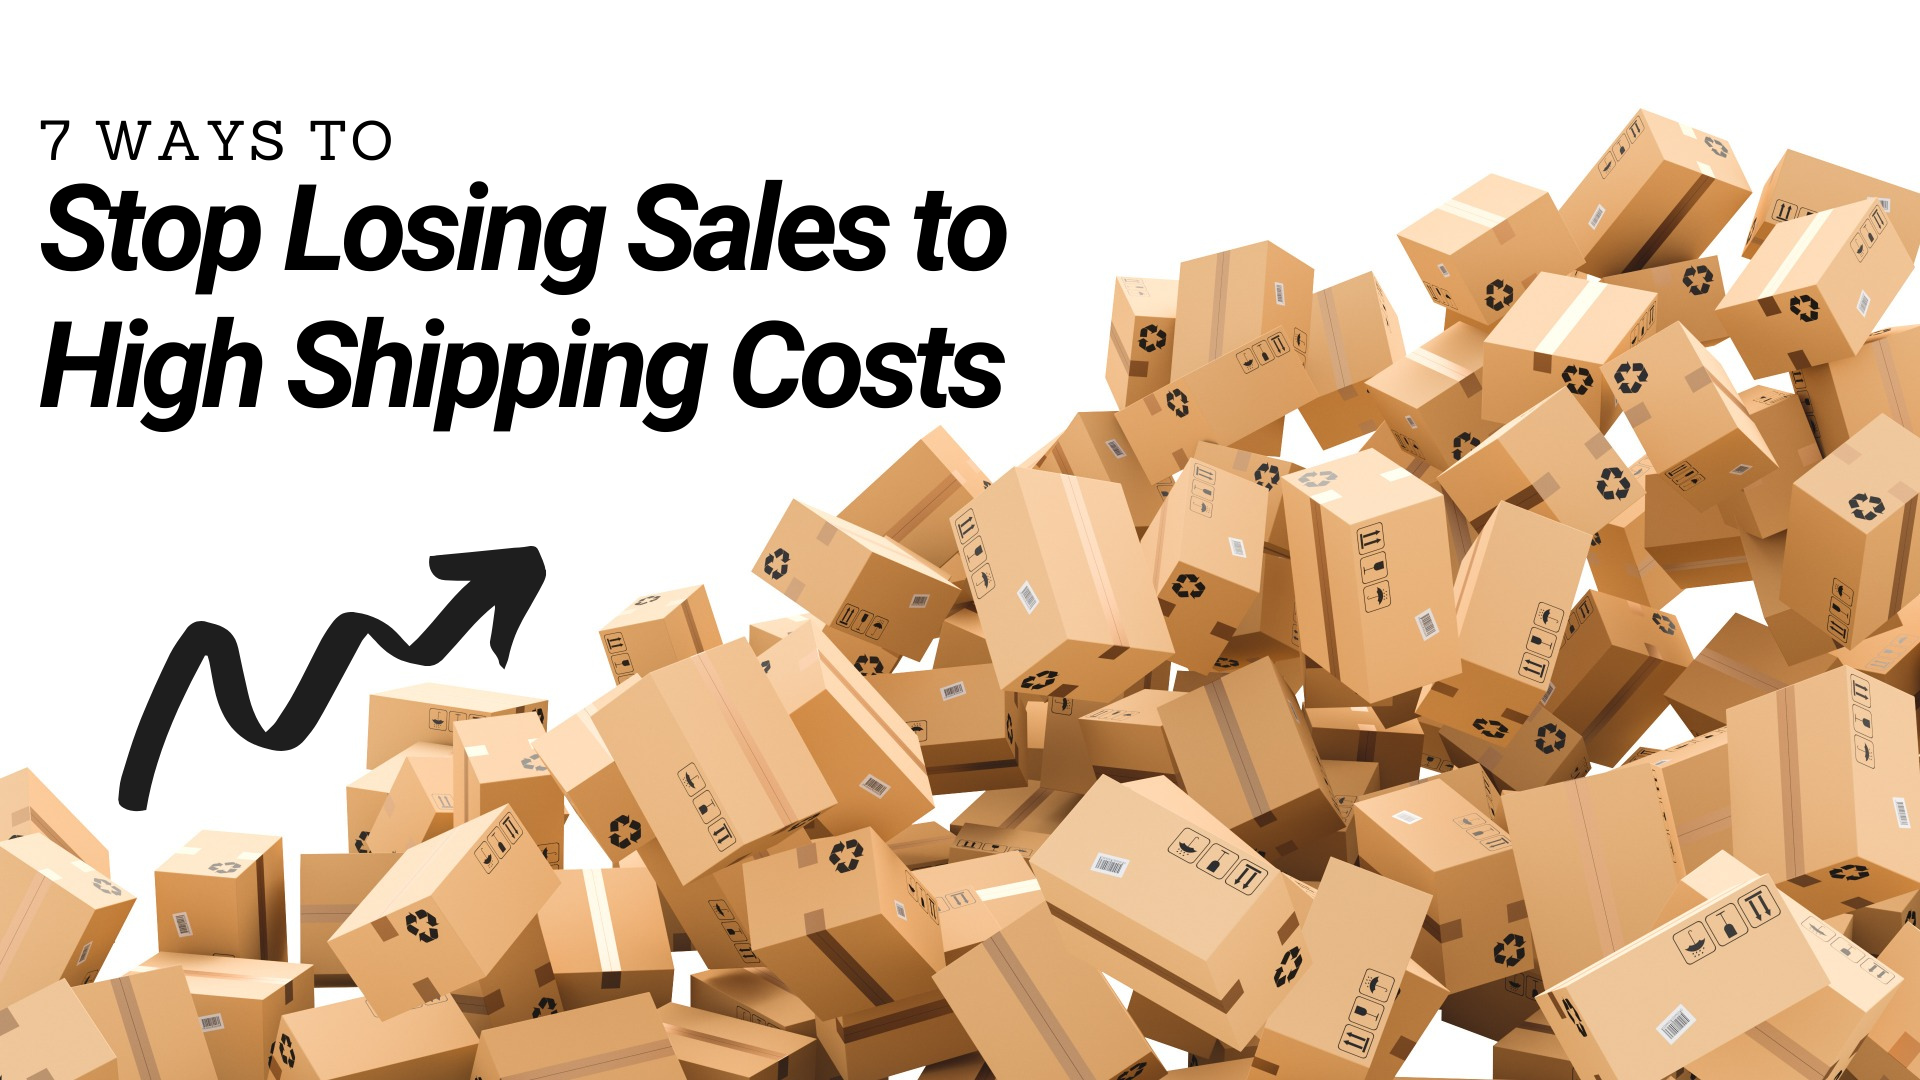 7 ways to stop losing sales to high shipping costs